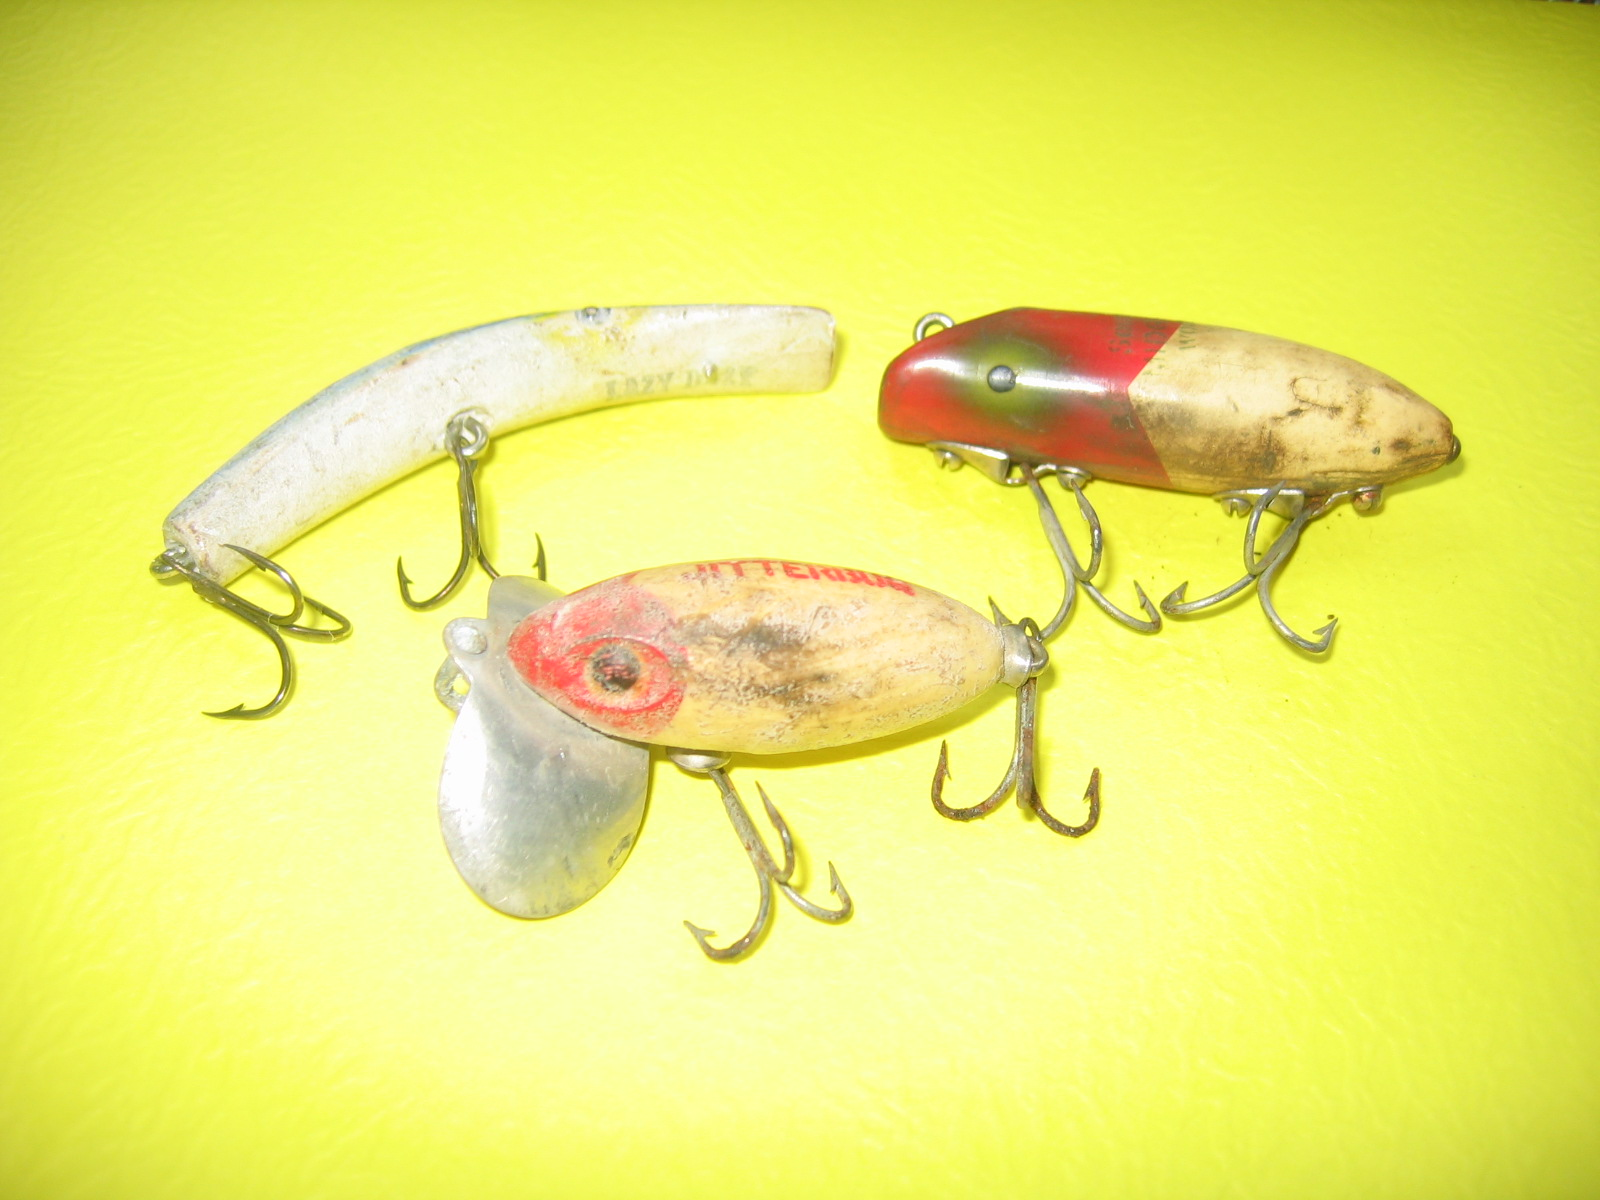 Antique wooden fishing lures bing images for Antique wooden fishing lures